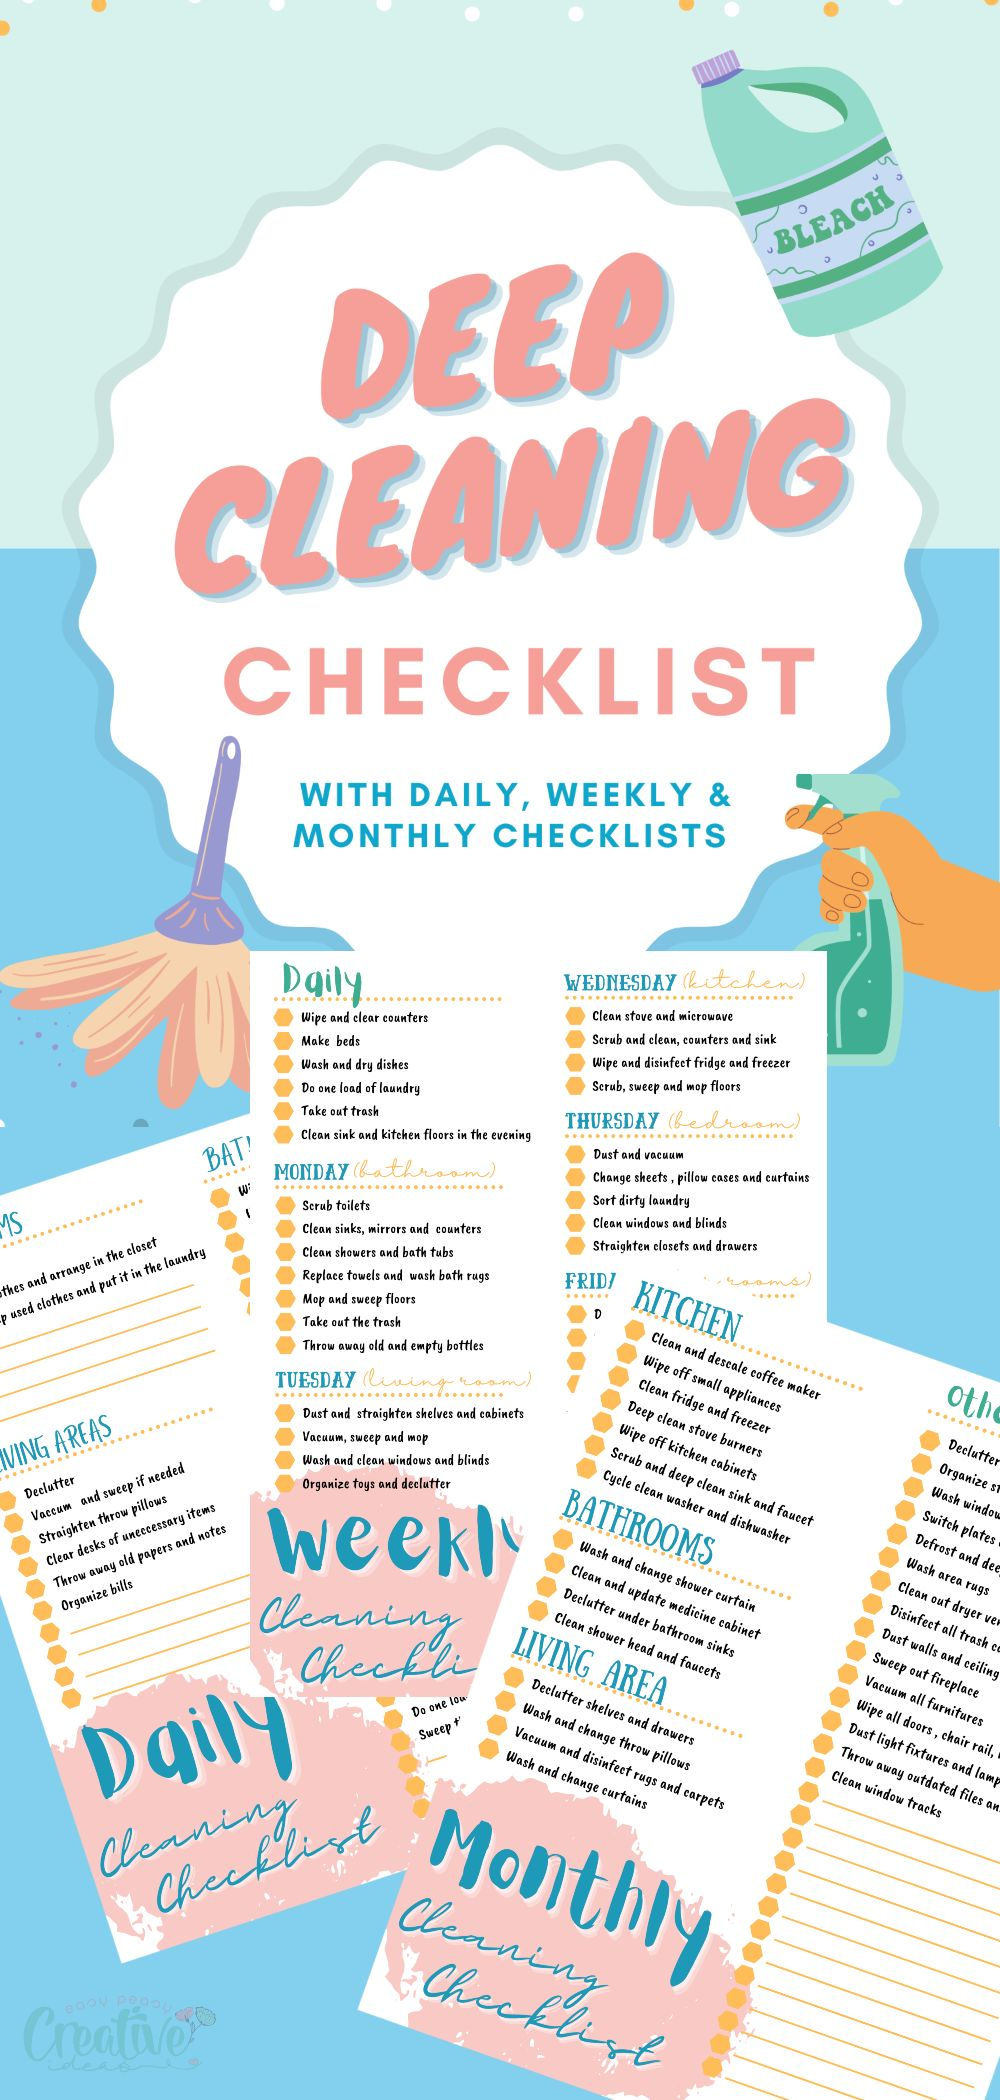 Keeping up with all the cleaning you need to do around your house can be pretty exhausting. And if you're not organized, you're probably causing much more work for yourself than you need to. That's why I love using a deep cleaning checklist as I clean. It helps me stay on track and ensures everything gets cleaned on a regular basis. via @petroneagu